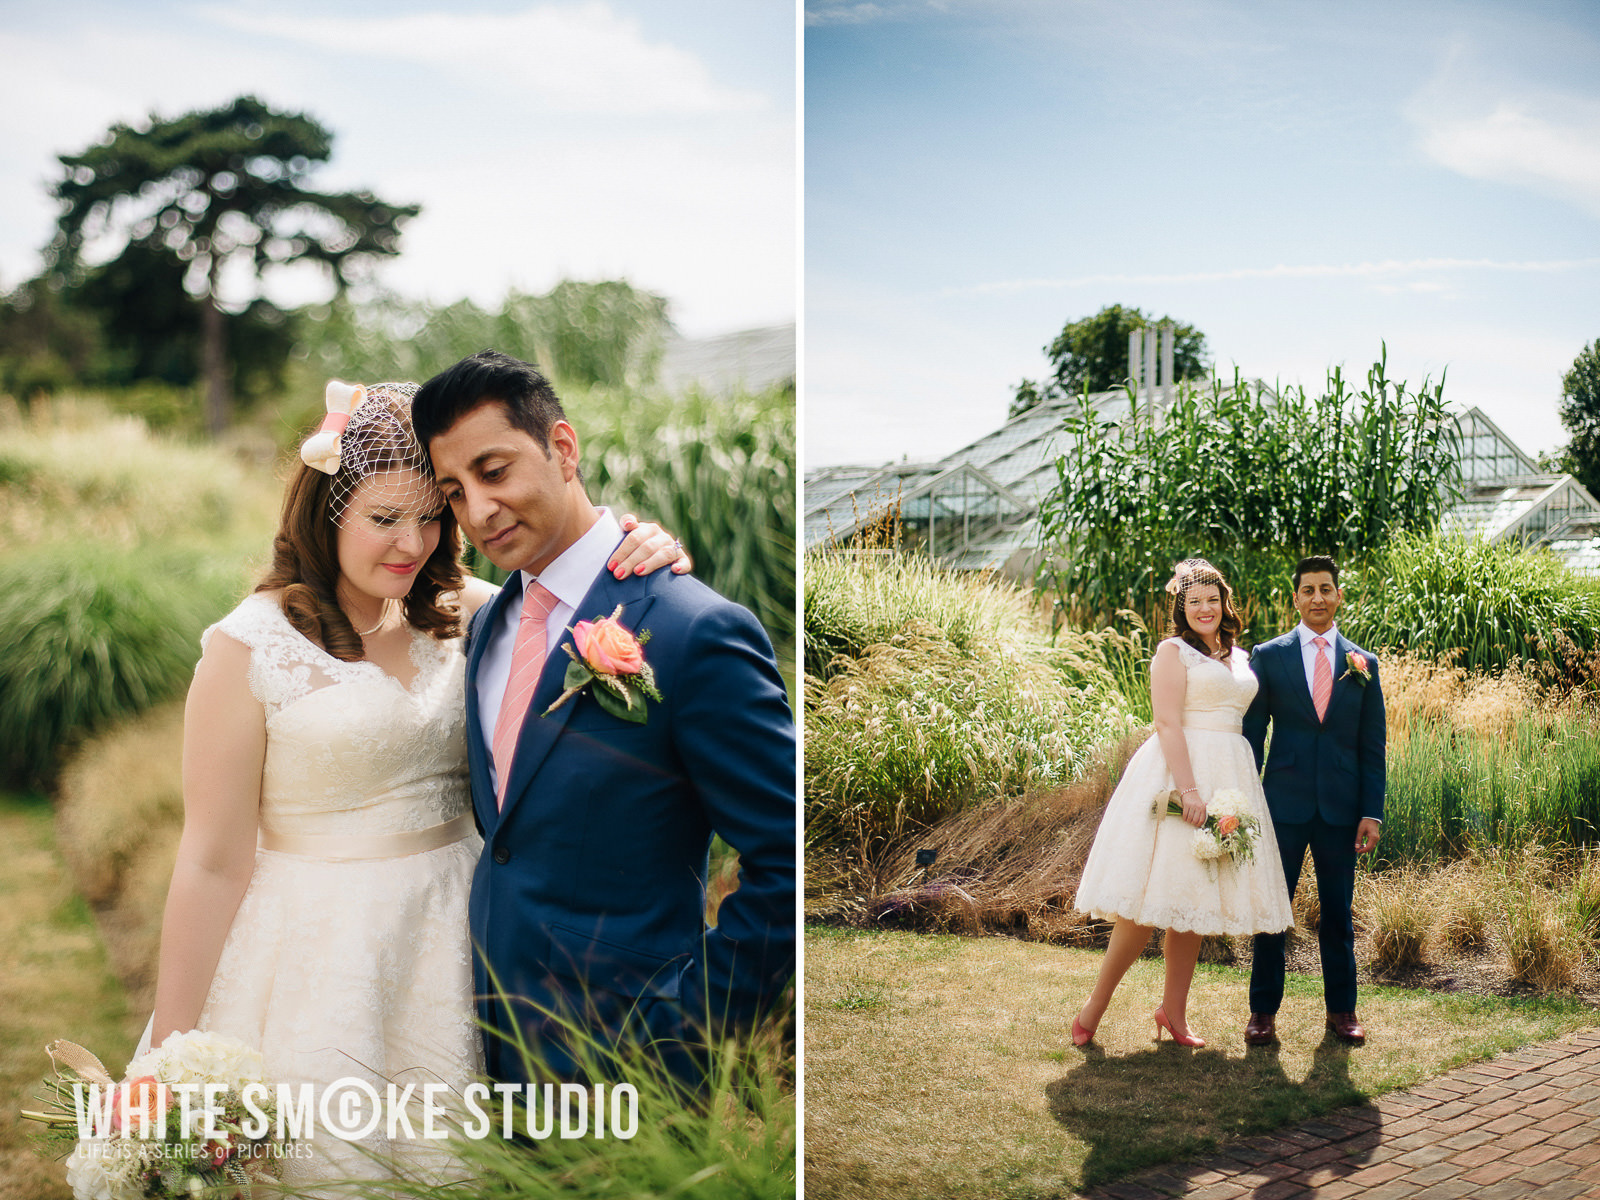 harriet_sanjeev_kew_garden_107_cambridge_cottage_wedding